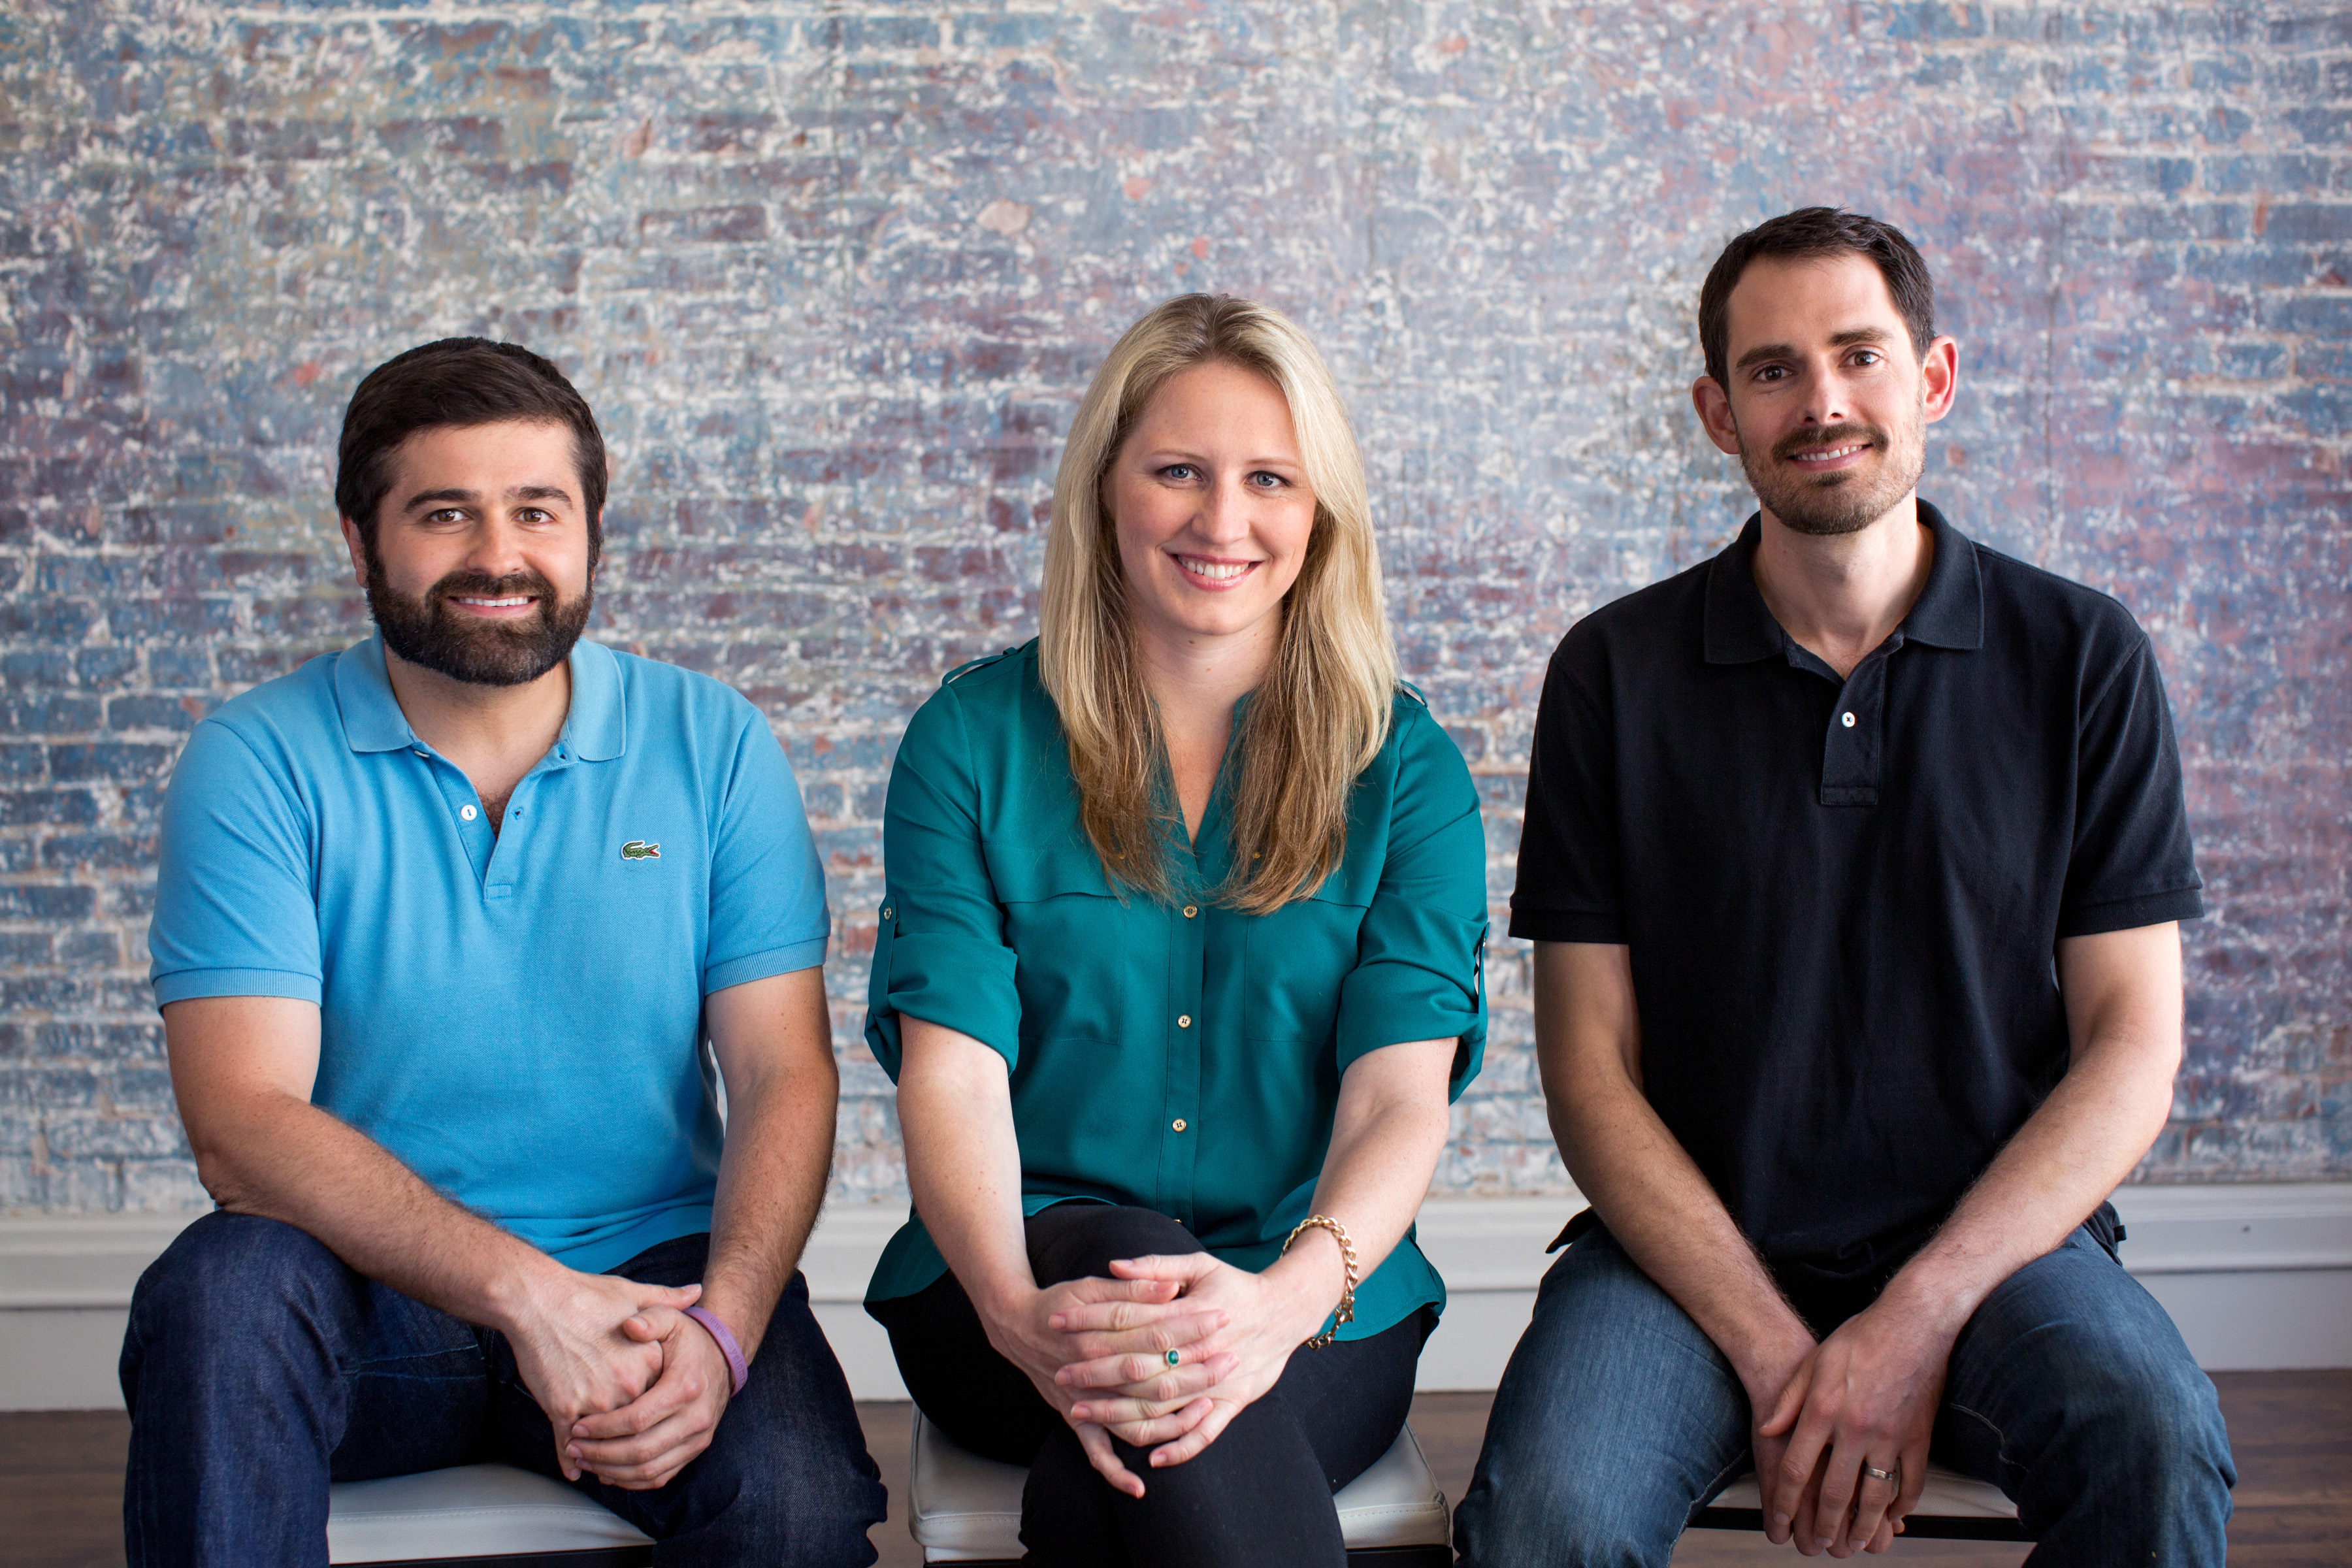 Exclusive interview: Indiegogo deals with competition and creates offering for corporates